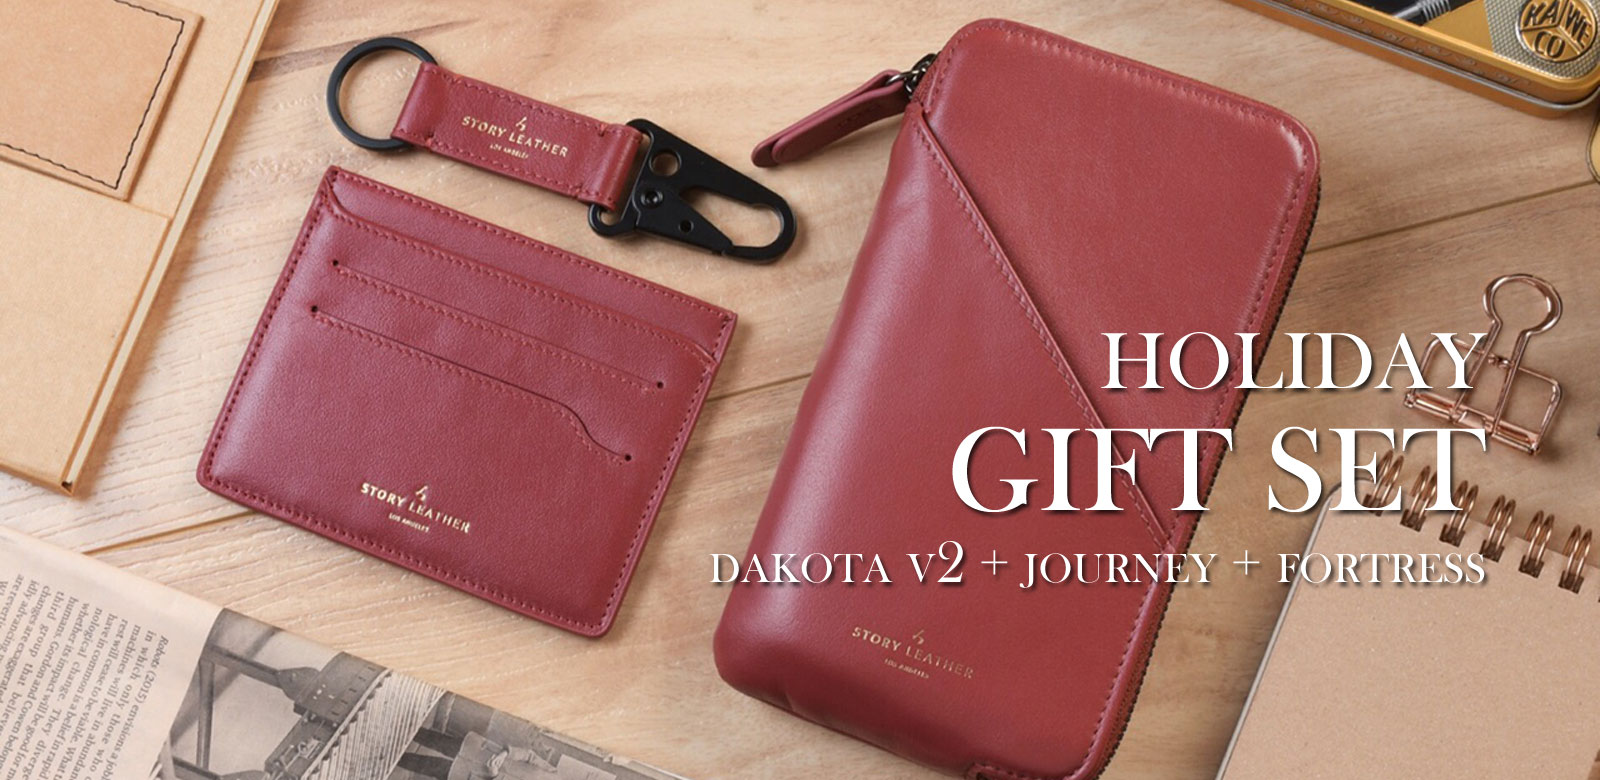 Start Your Holiday Shopping Now - Get the Dakota v2 Gift Set for 1 Great Price